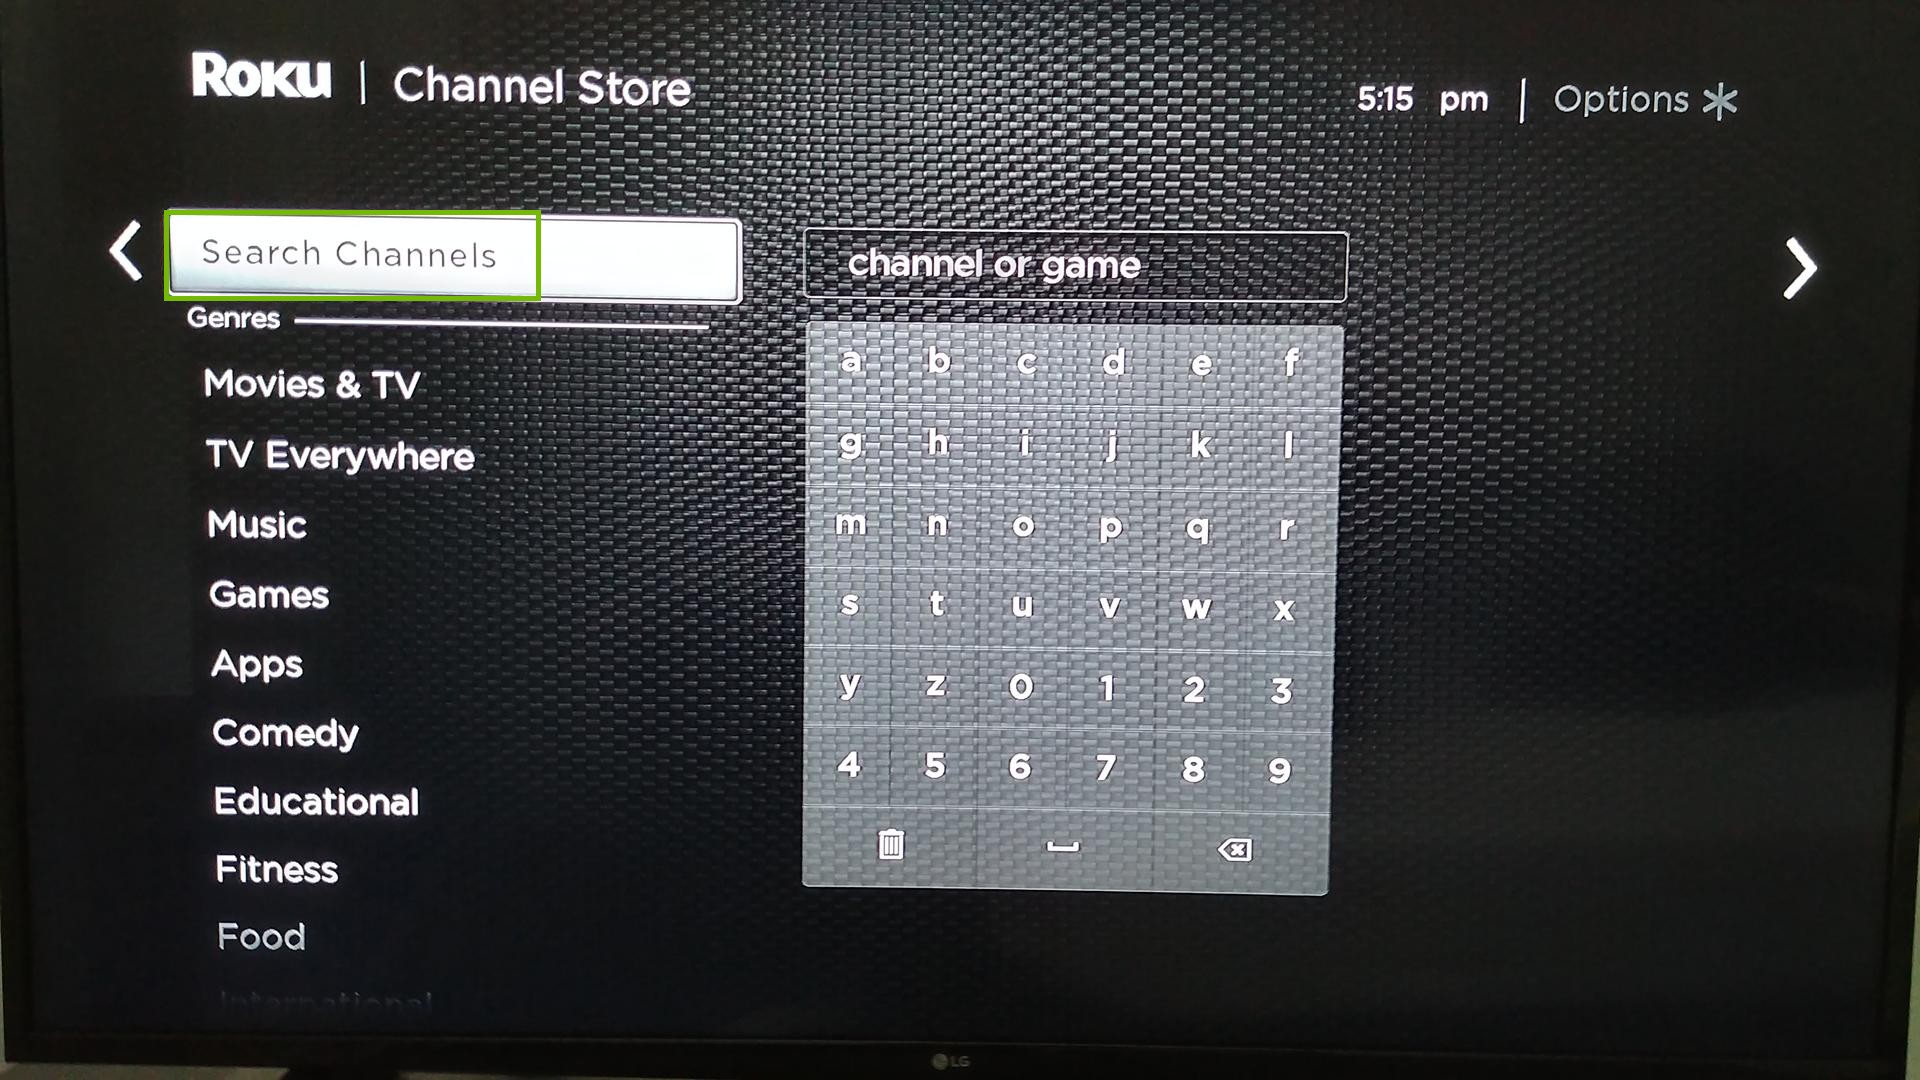 Streaming Channels with search highlighted.